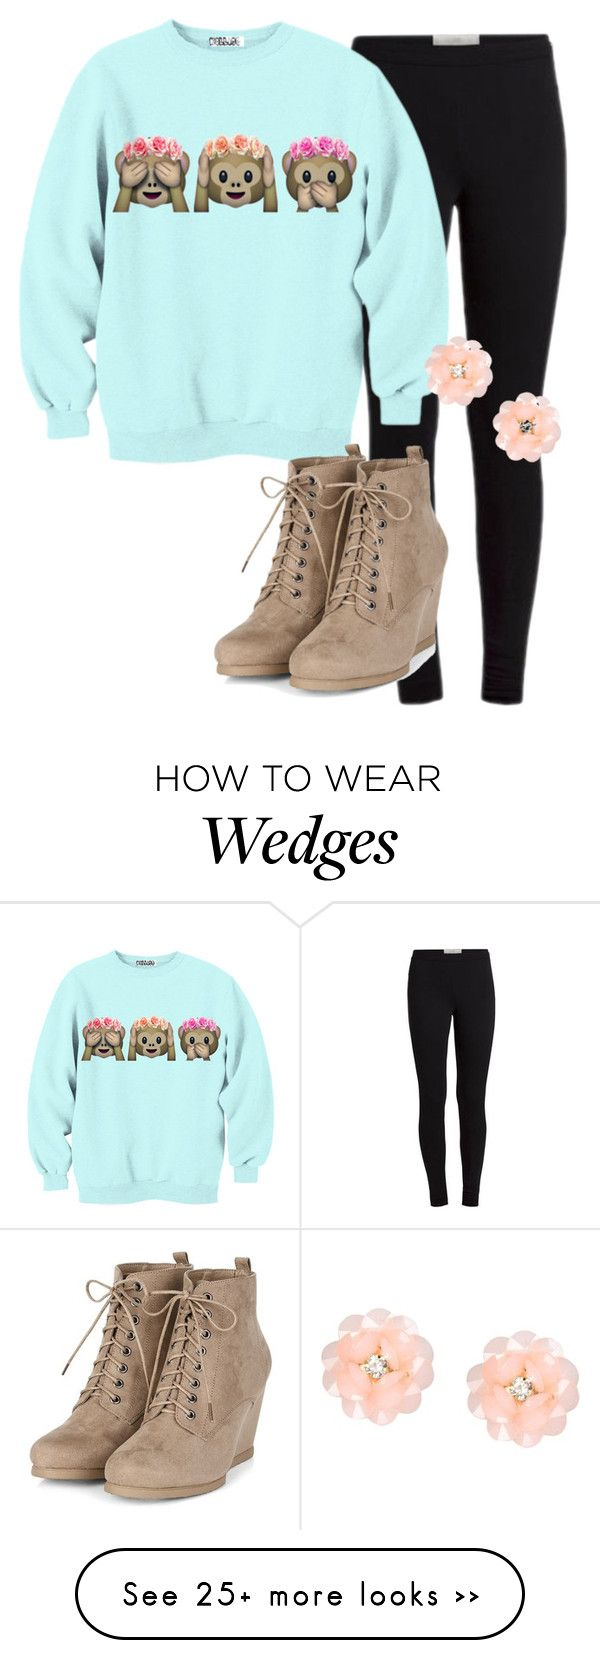 Best 25+ 7th grade outfits ideas on Pinterest | Middle school outfits Outfits for school for ...